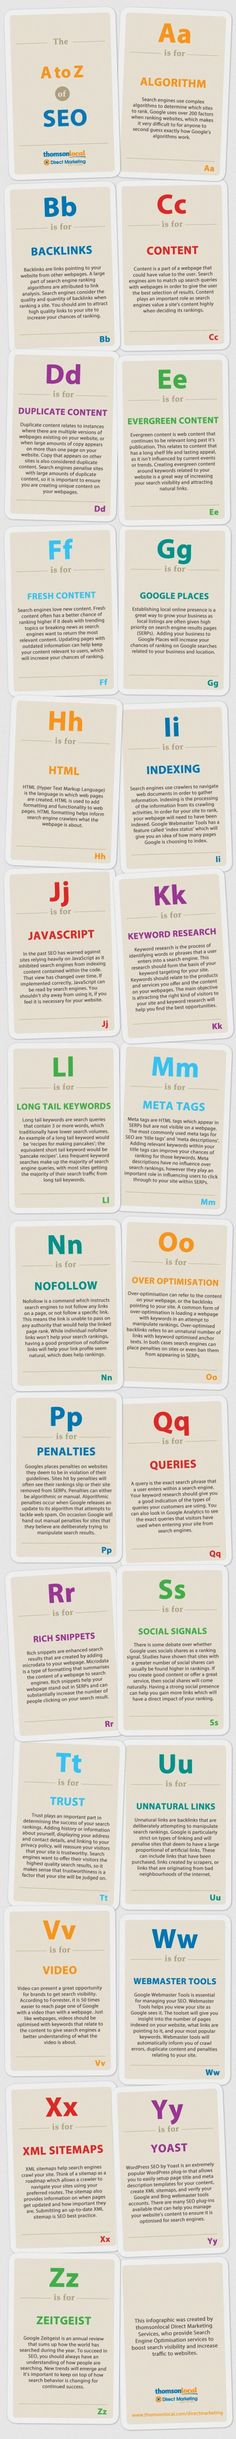 SEO for Beginners: An A-Z of Common Terminology [Infographic]